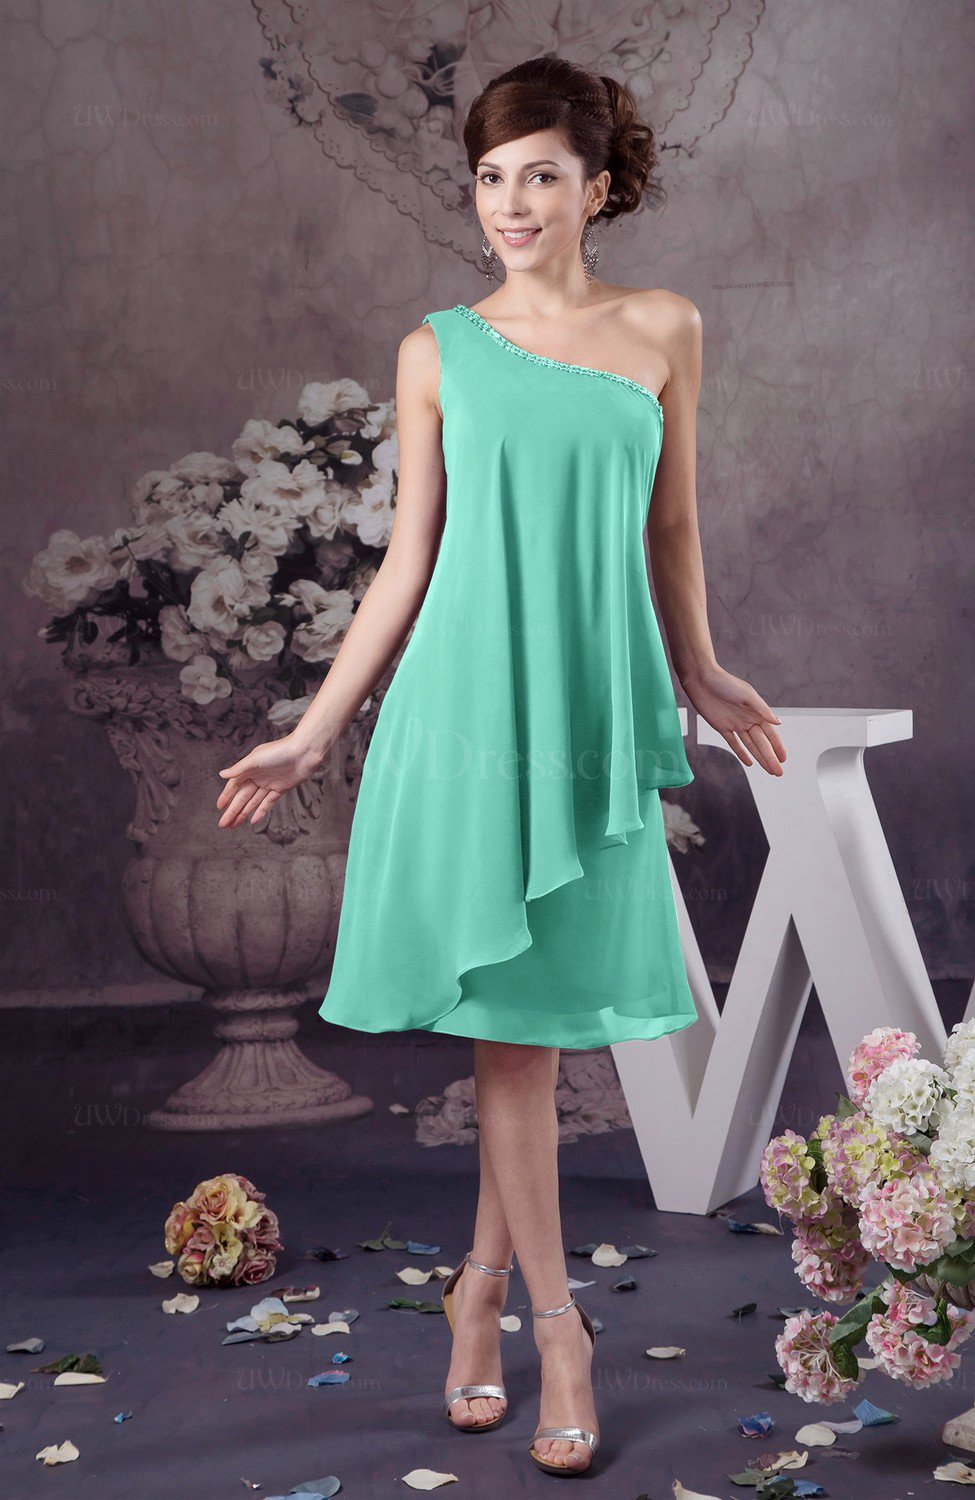 6407a1c092108 Mint Green Chiffon Bridesmaid Dress One Shoulder Full Figure Informal  Formal Modern (Style D89665)